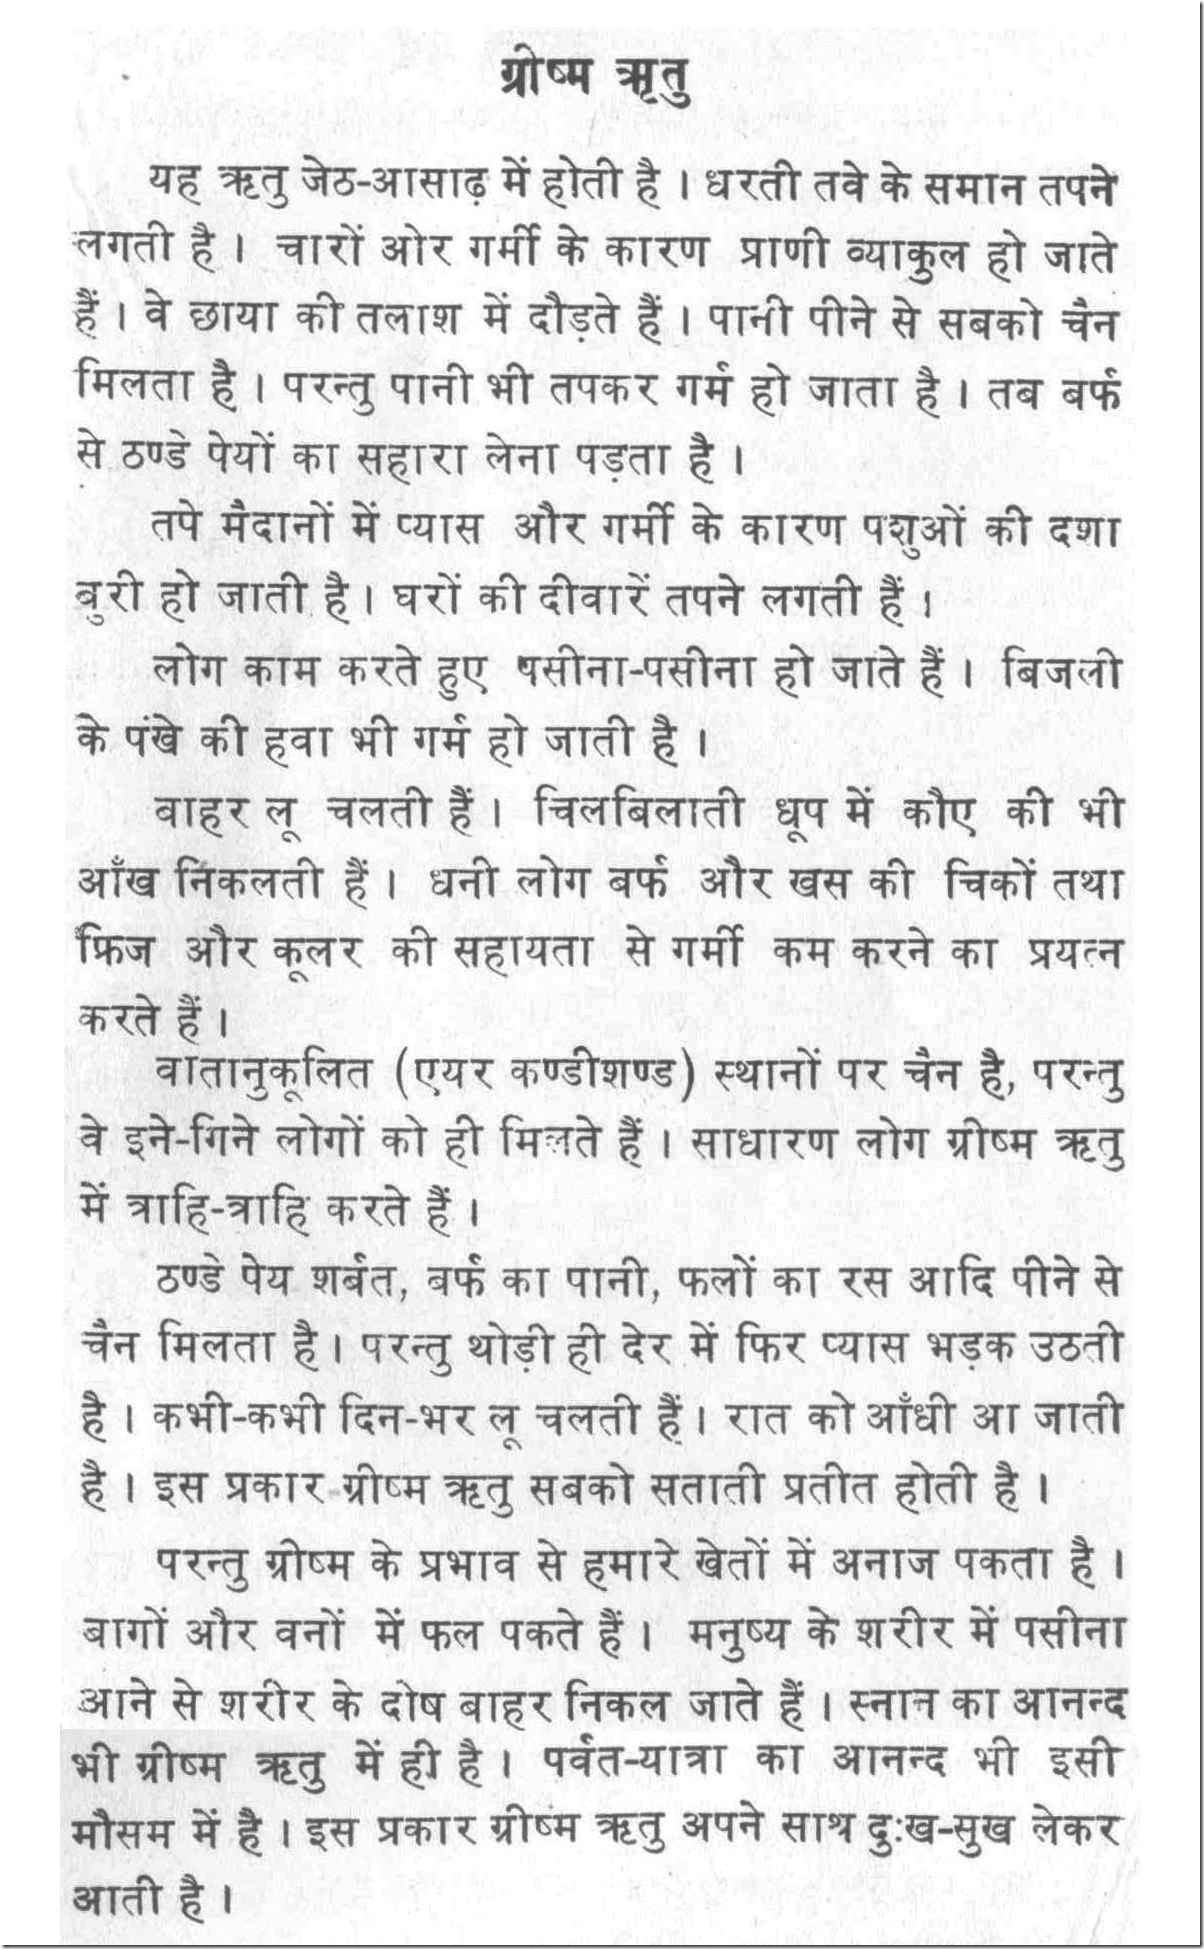 013 Summer Essay Ideas Of Season Fabulous An On Winter In Hindi Unforgettable Vacation Class 2 Urdu Conclusion Full